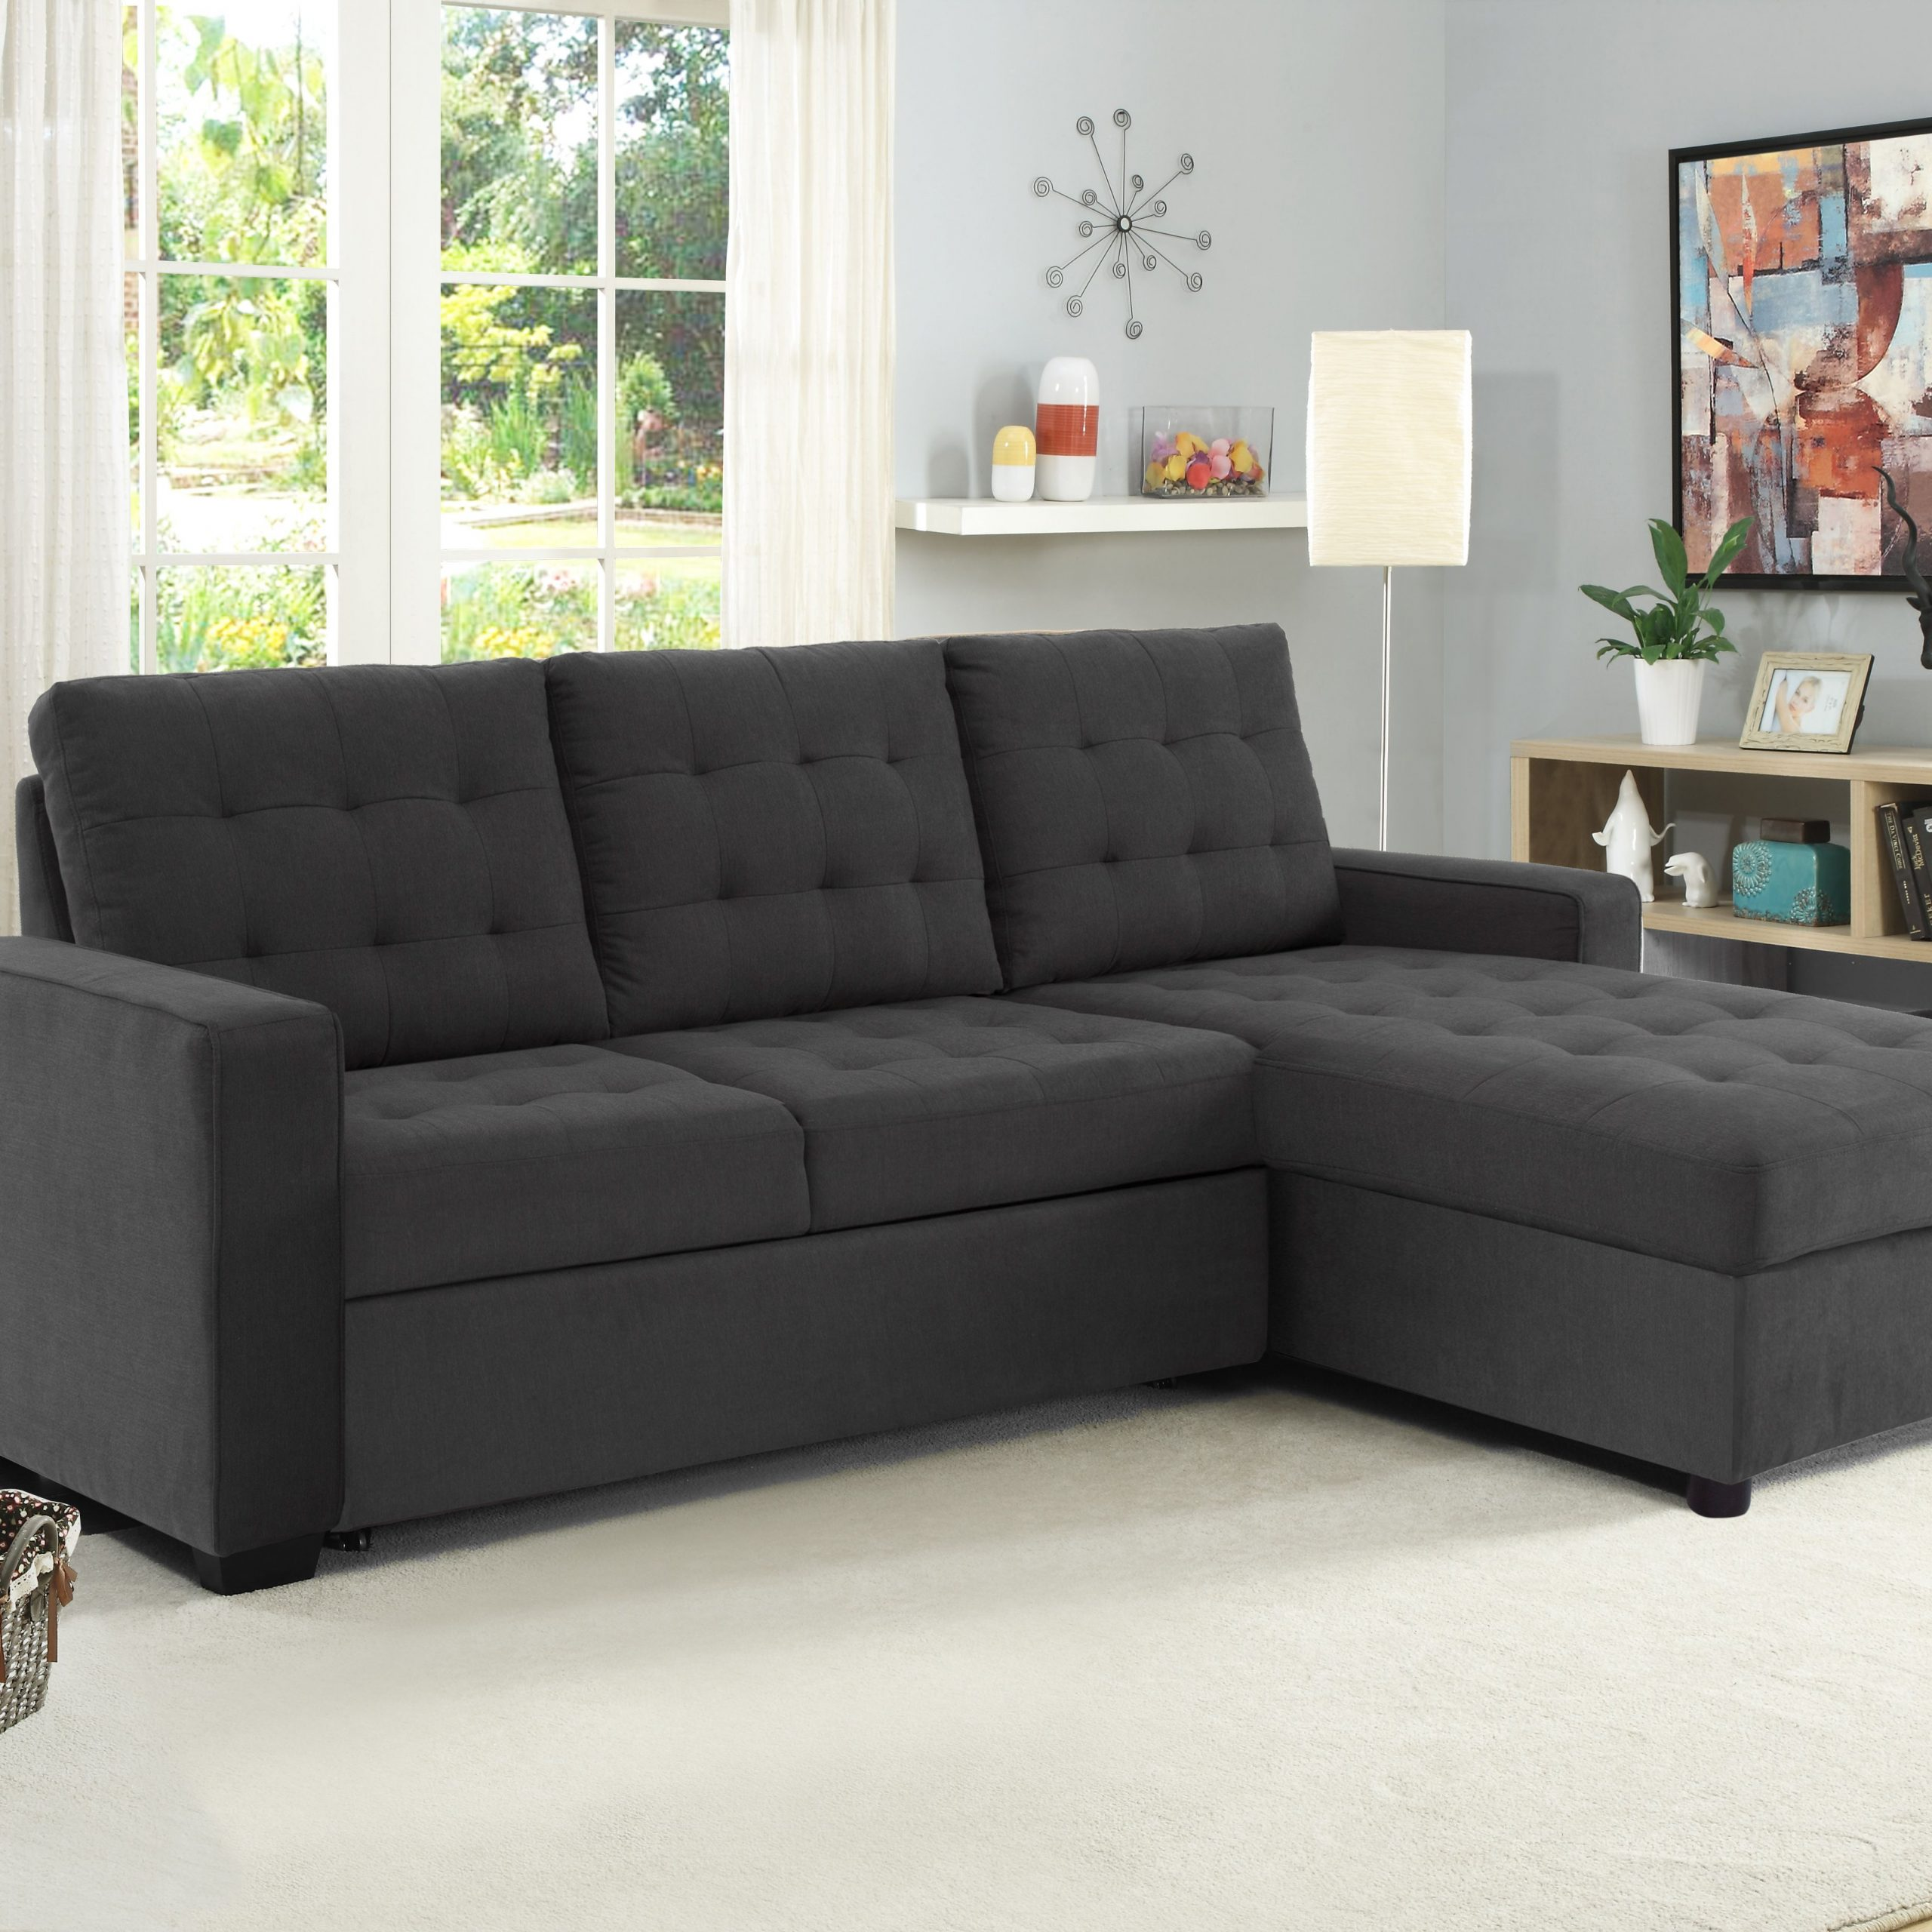 Buy Serta Bostal Sectional Sofa Convertible: Converts Into Inside Live It Cozy Sectional Sofa Beds With Storage (View 2 of 15)